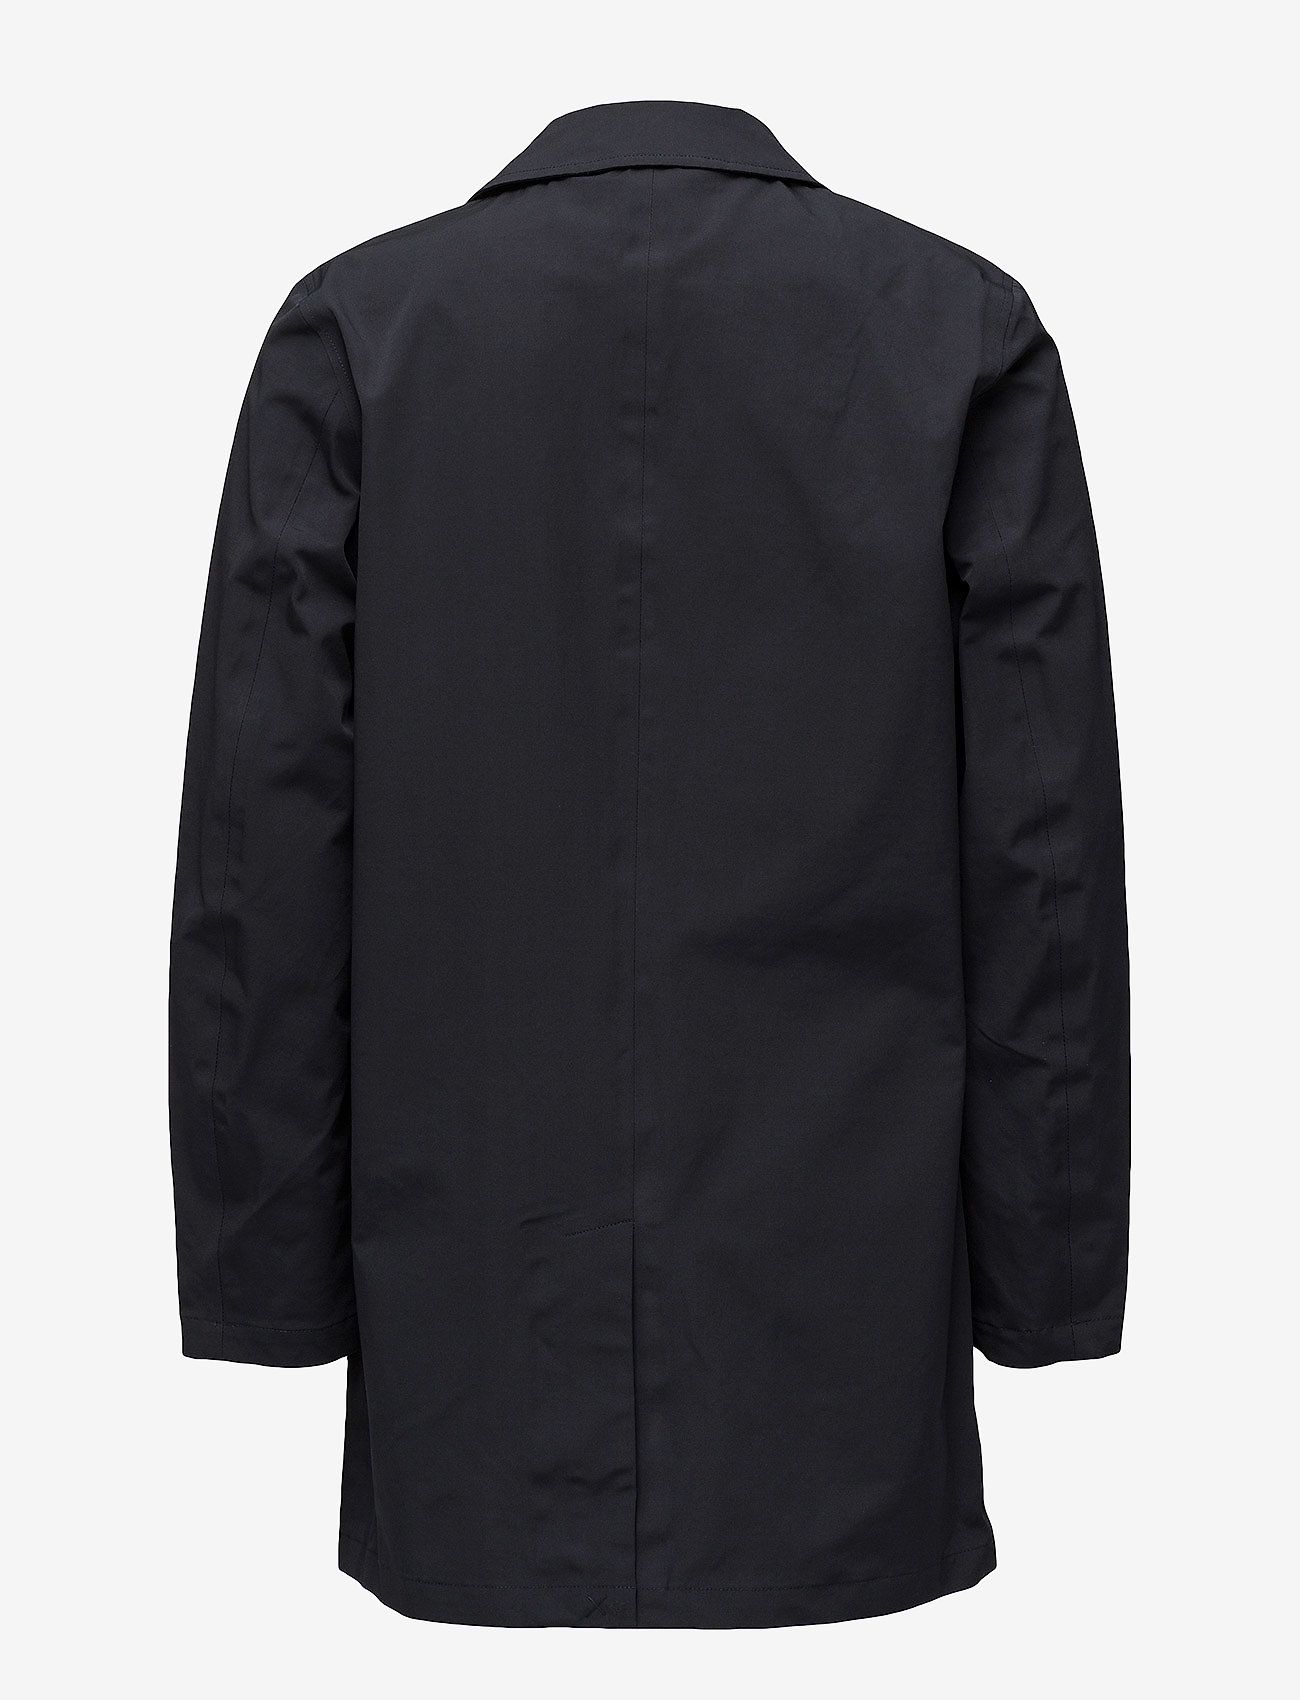 Lexington Clothing Pierce Overcoat - Jackor & Rockar Deep Marine Blue